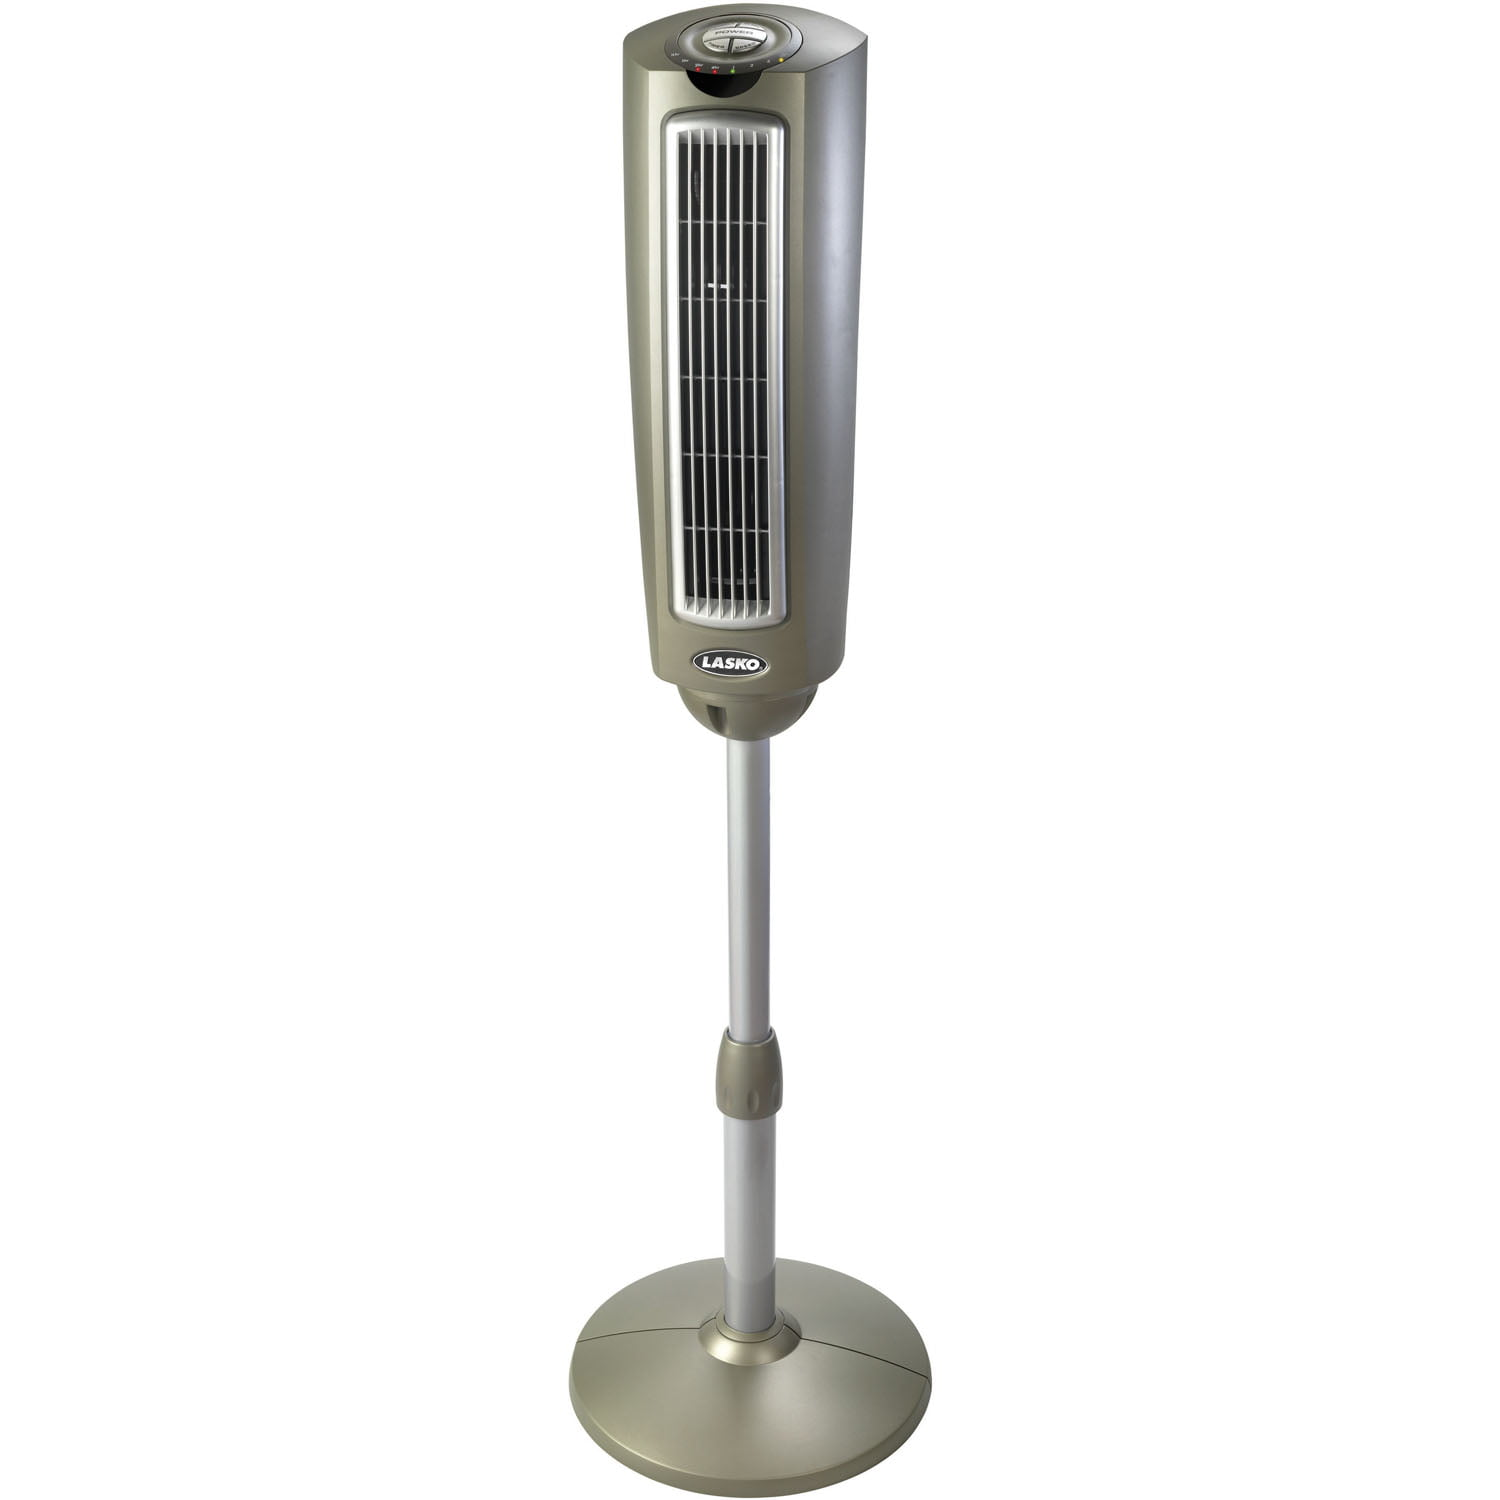 "Lasko 20/"" Oscillating 4-Speed Remote Control Pedestal Tower Fan-FREE SHIPPING"